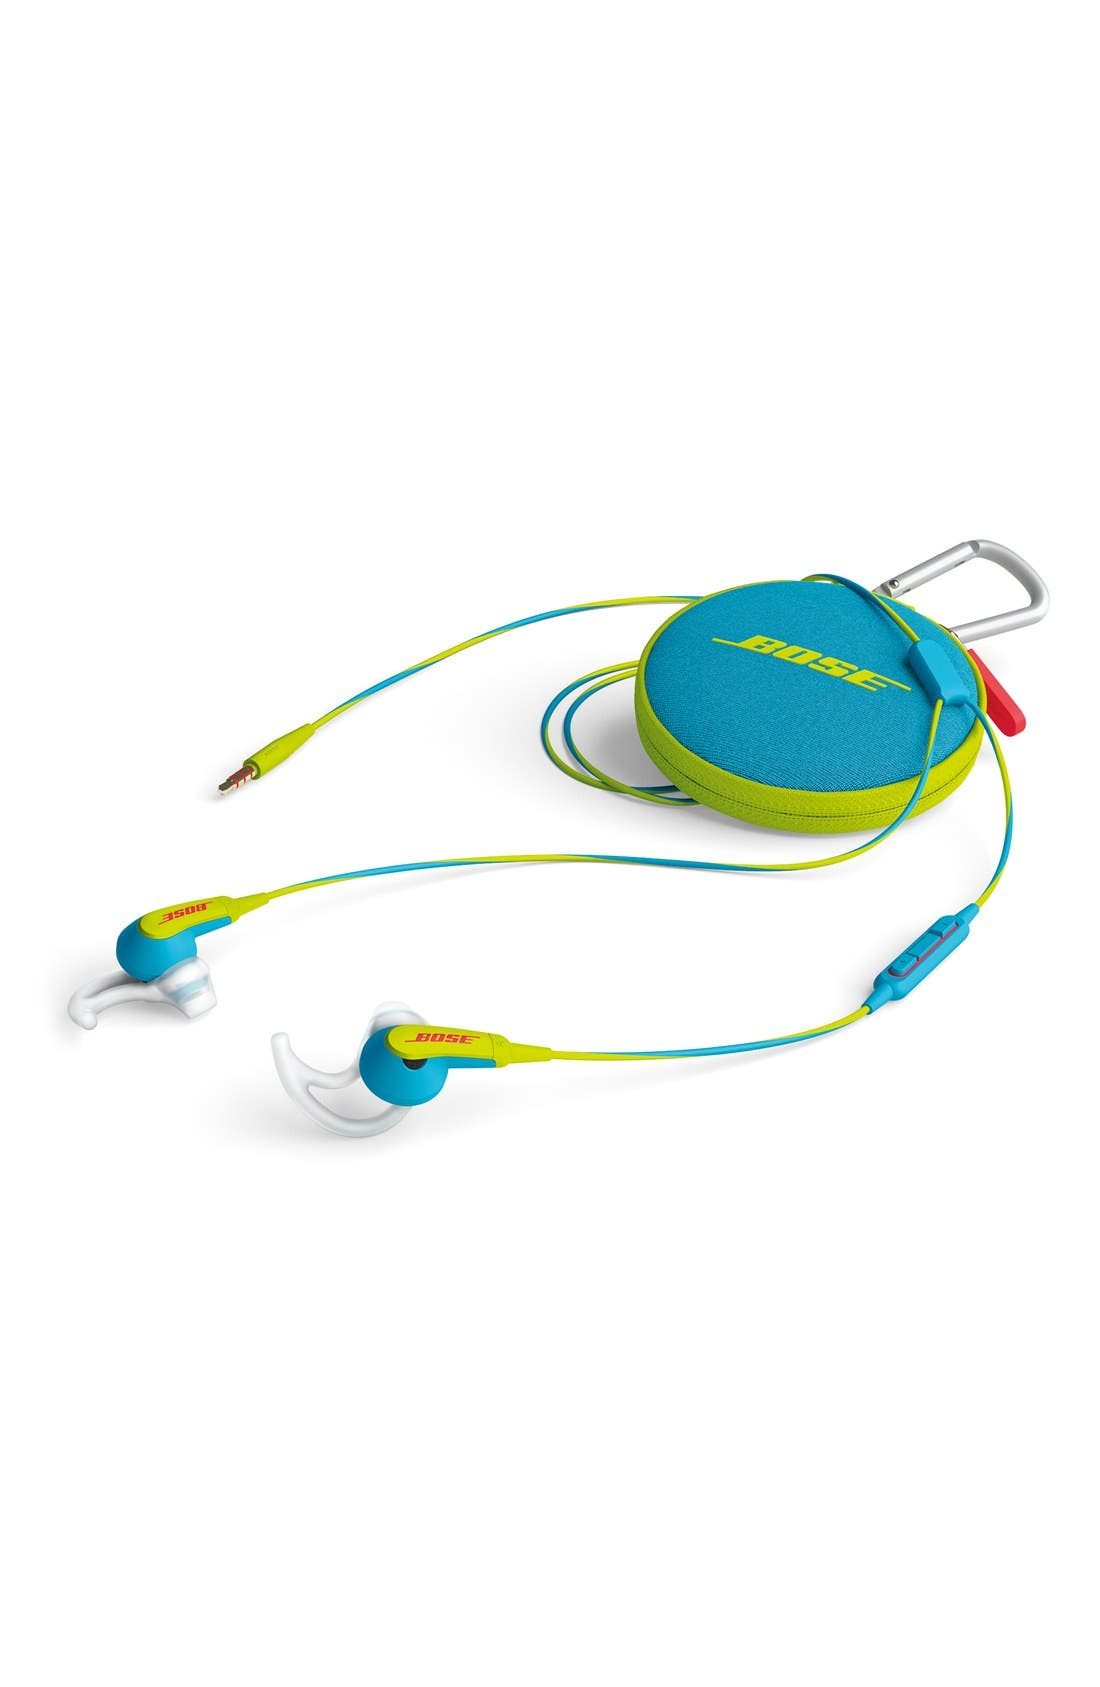 SoundSport<sup>®</sup> In-Ear Headphones,                             Alternate thumbnail 4, color,                             400